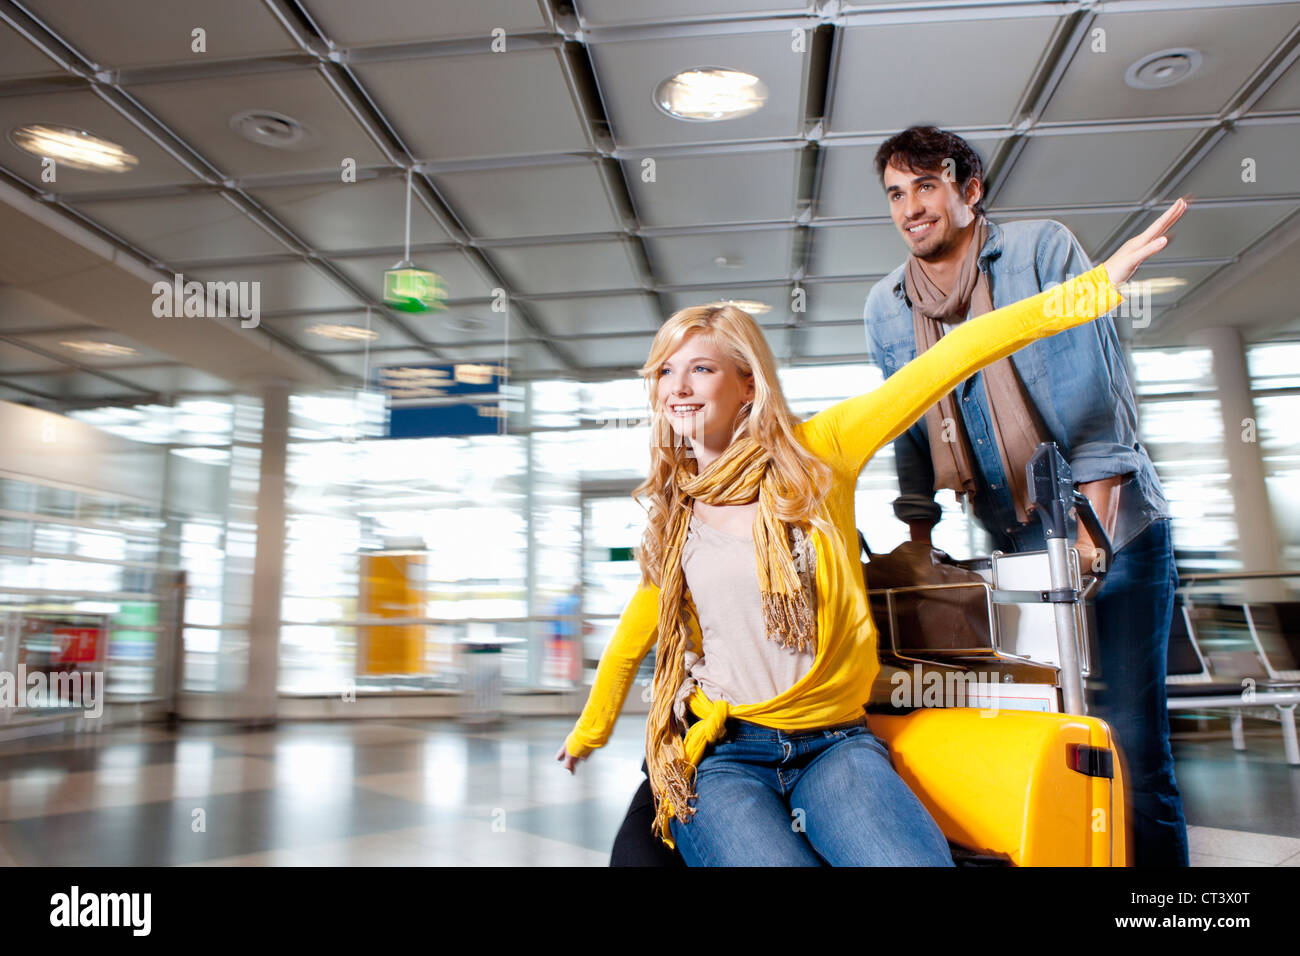 Couple playing with luggage in airport - Stock Image